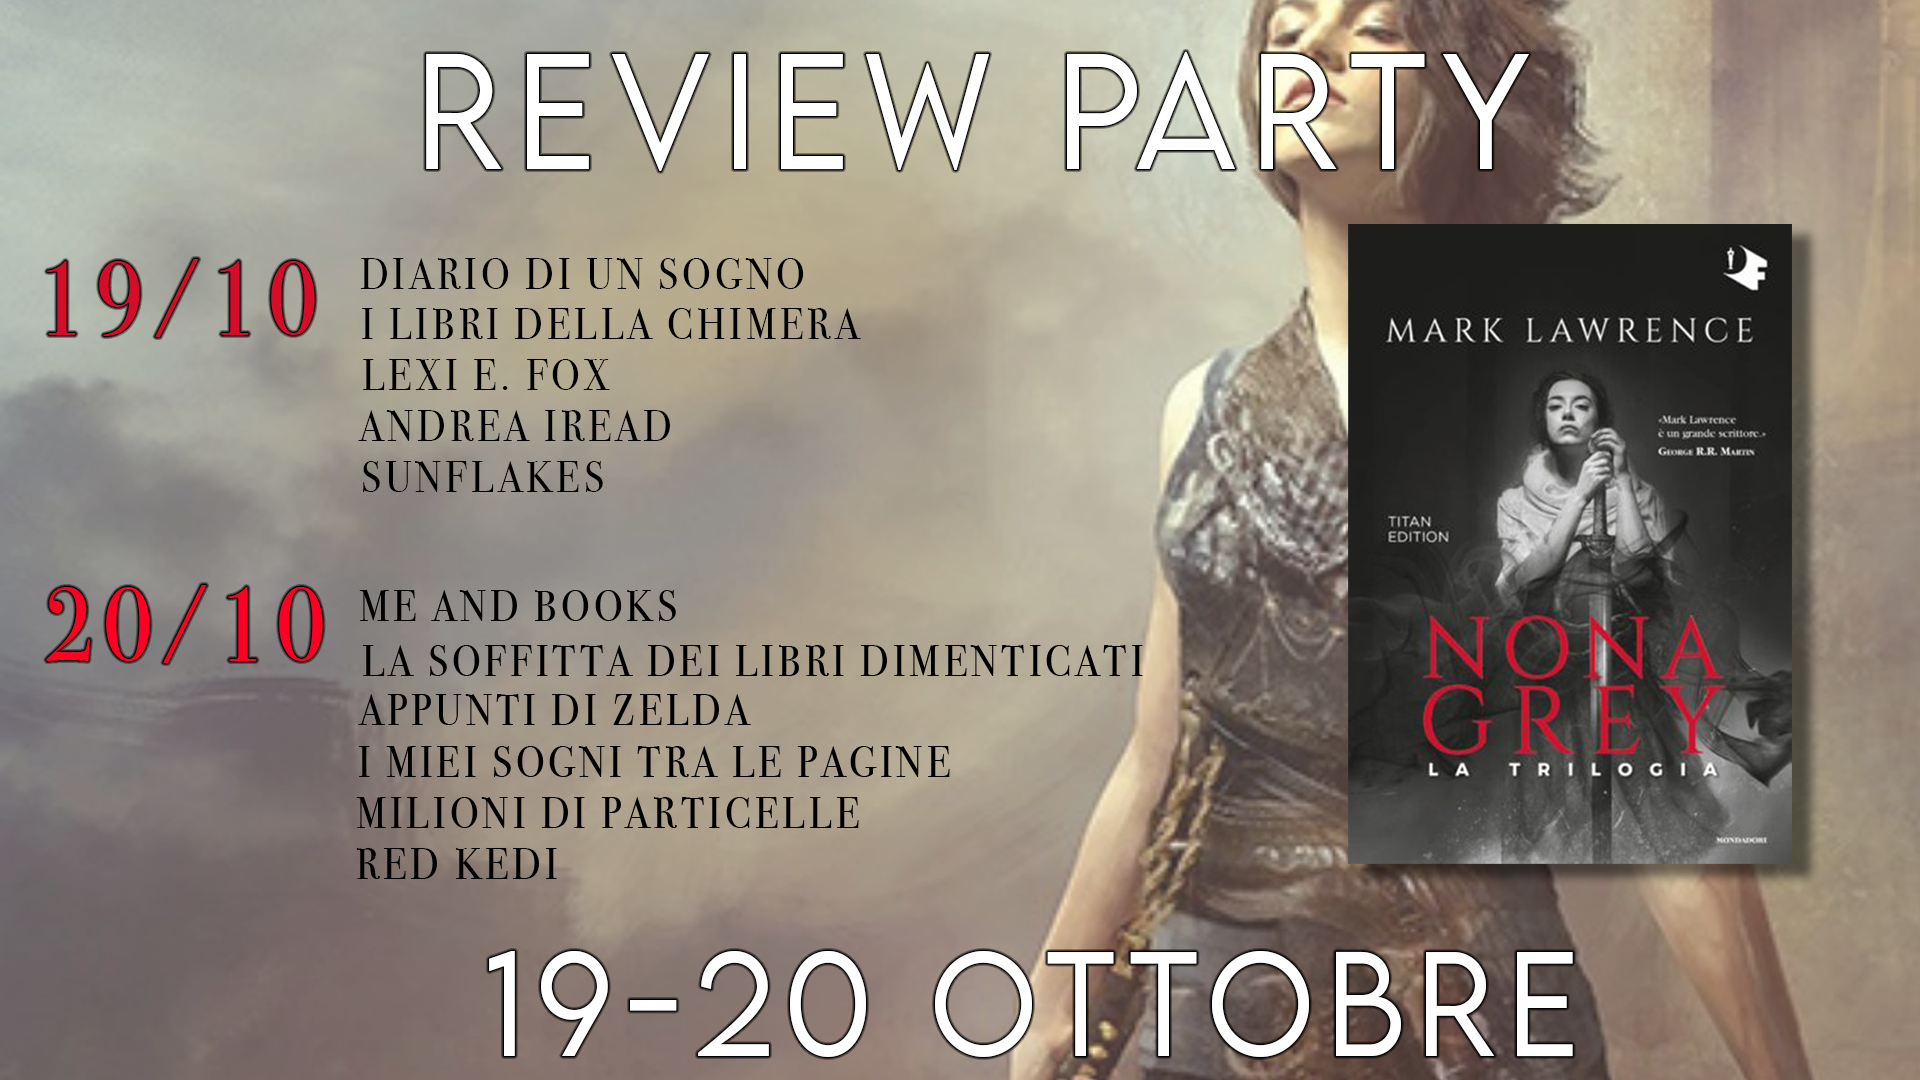 Review Party - Nona Grey di Mark Lawrence |Volume 1|